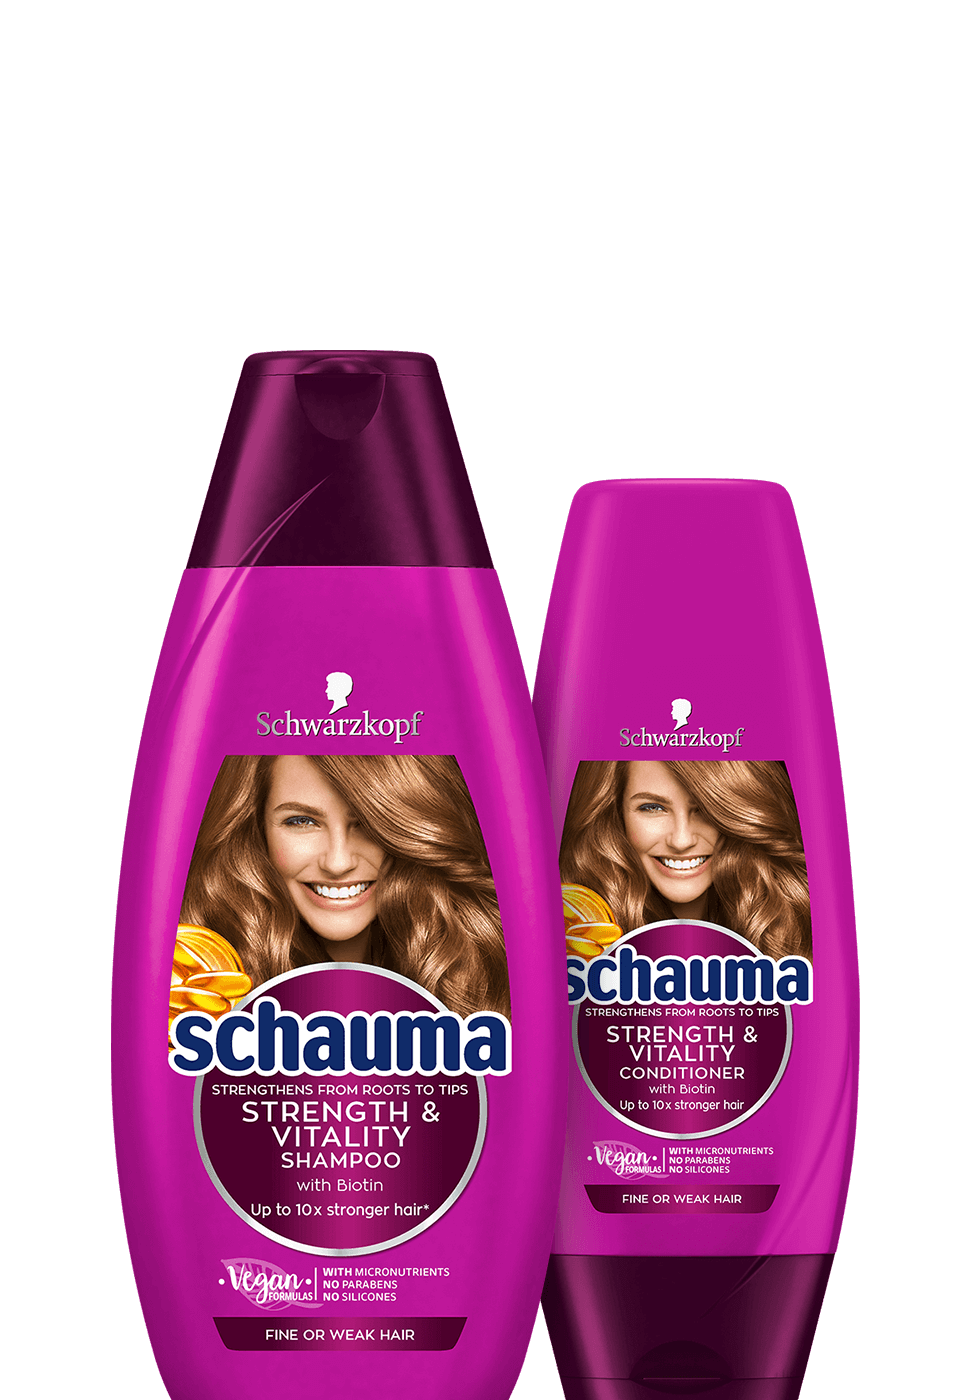 schauma_com_strength_and_vitality_overlay_970x1400